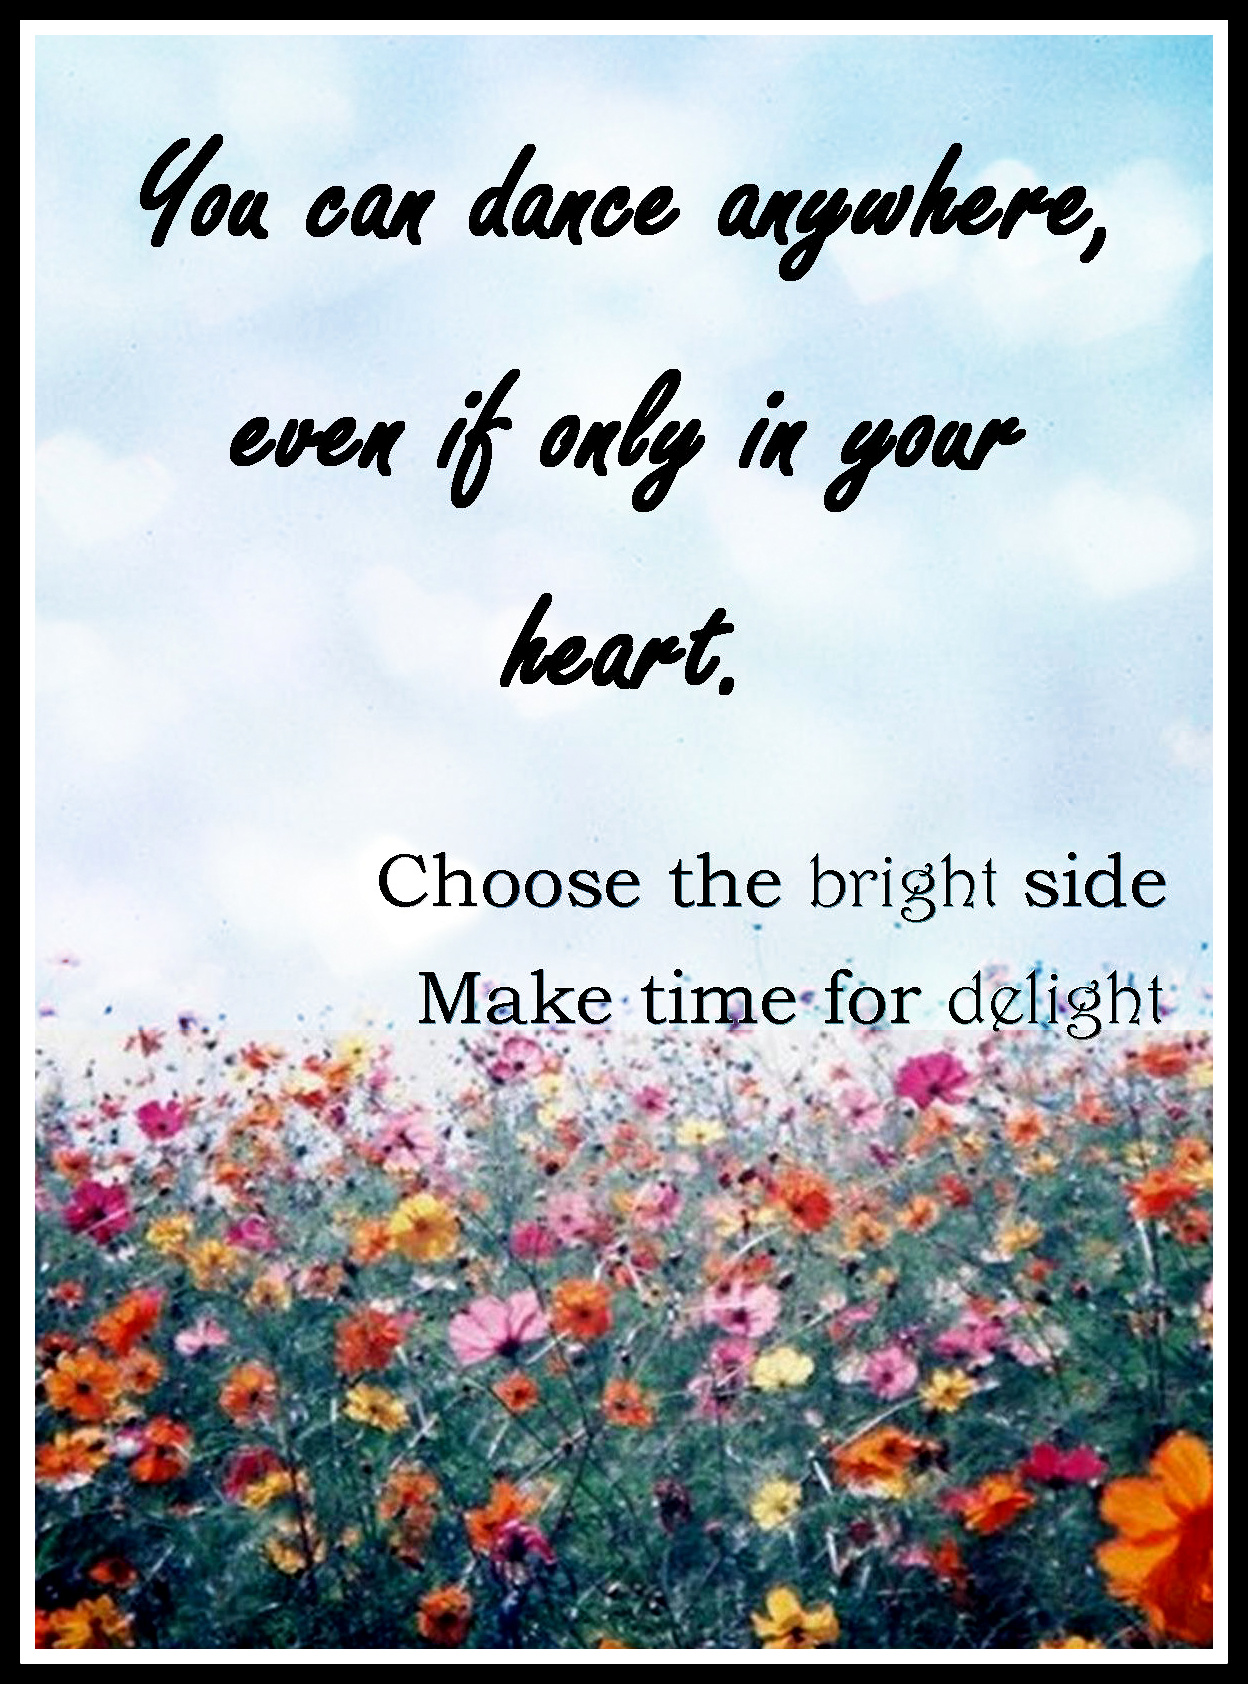 1choosethebrightside